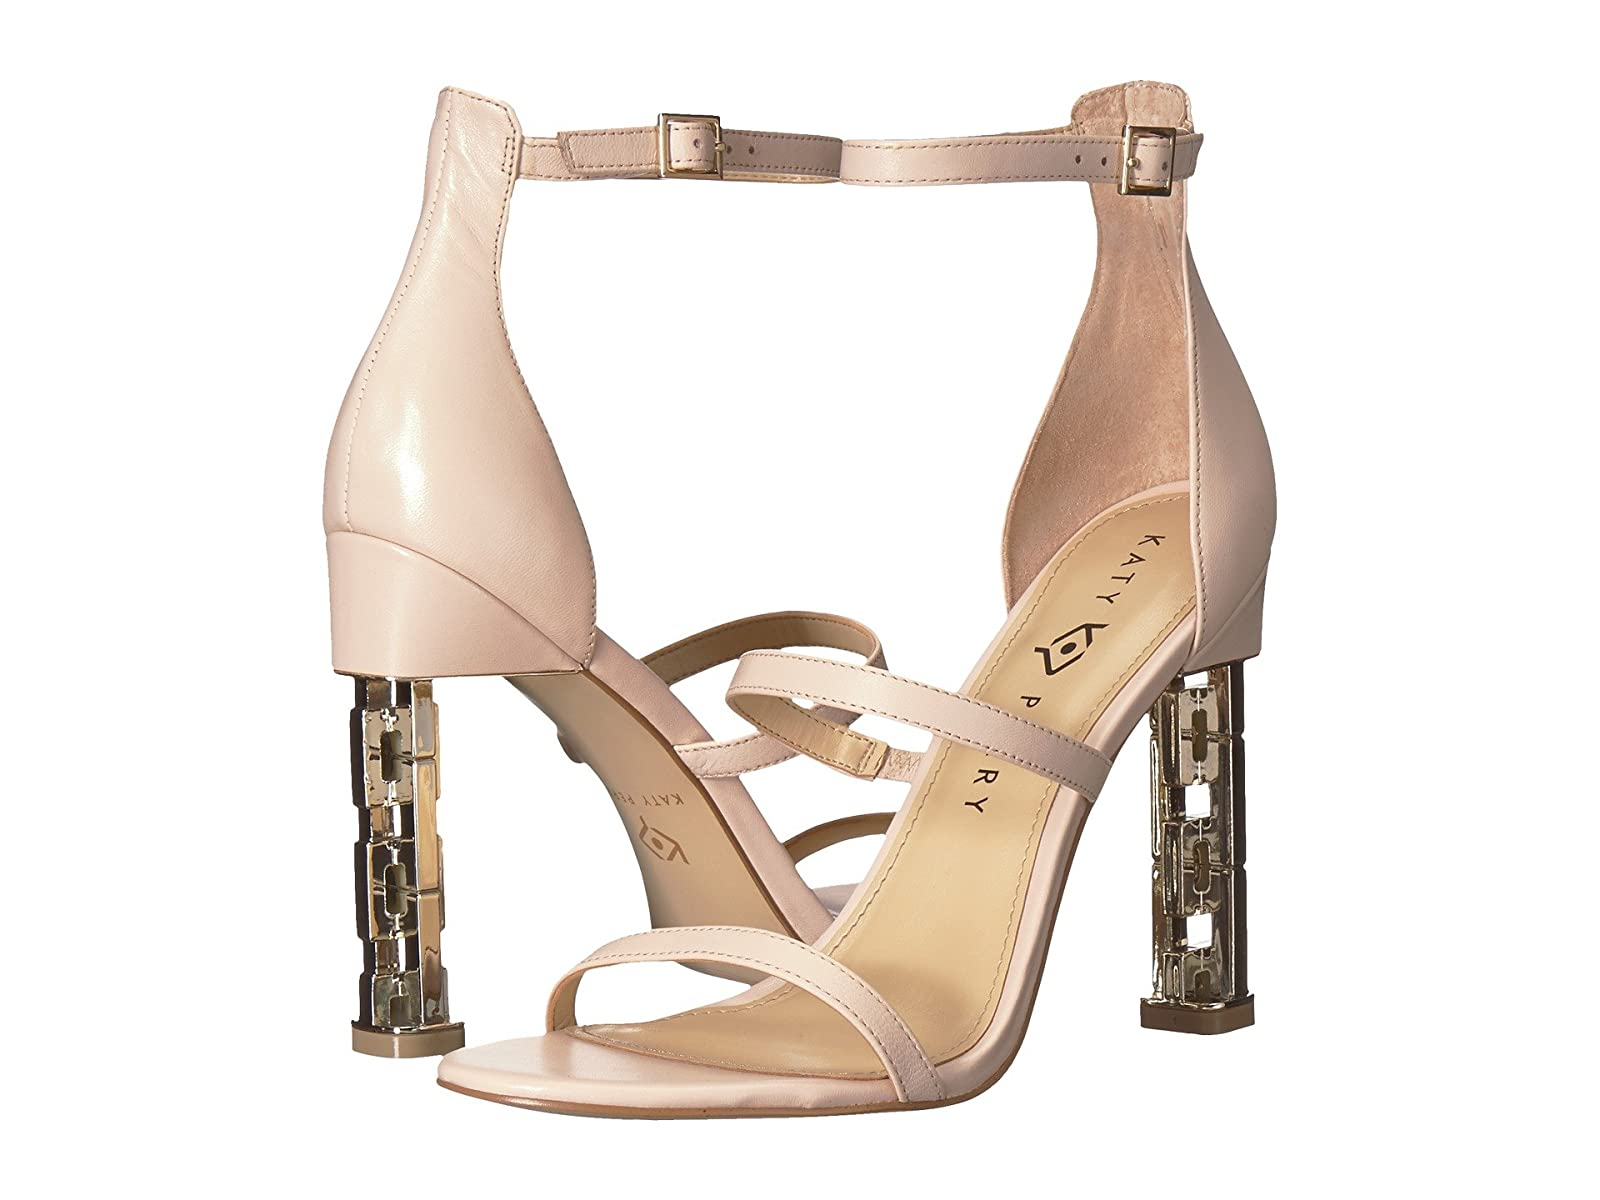 Katy Perry The VillanCheap and distinctive eye-catching shoes